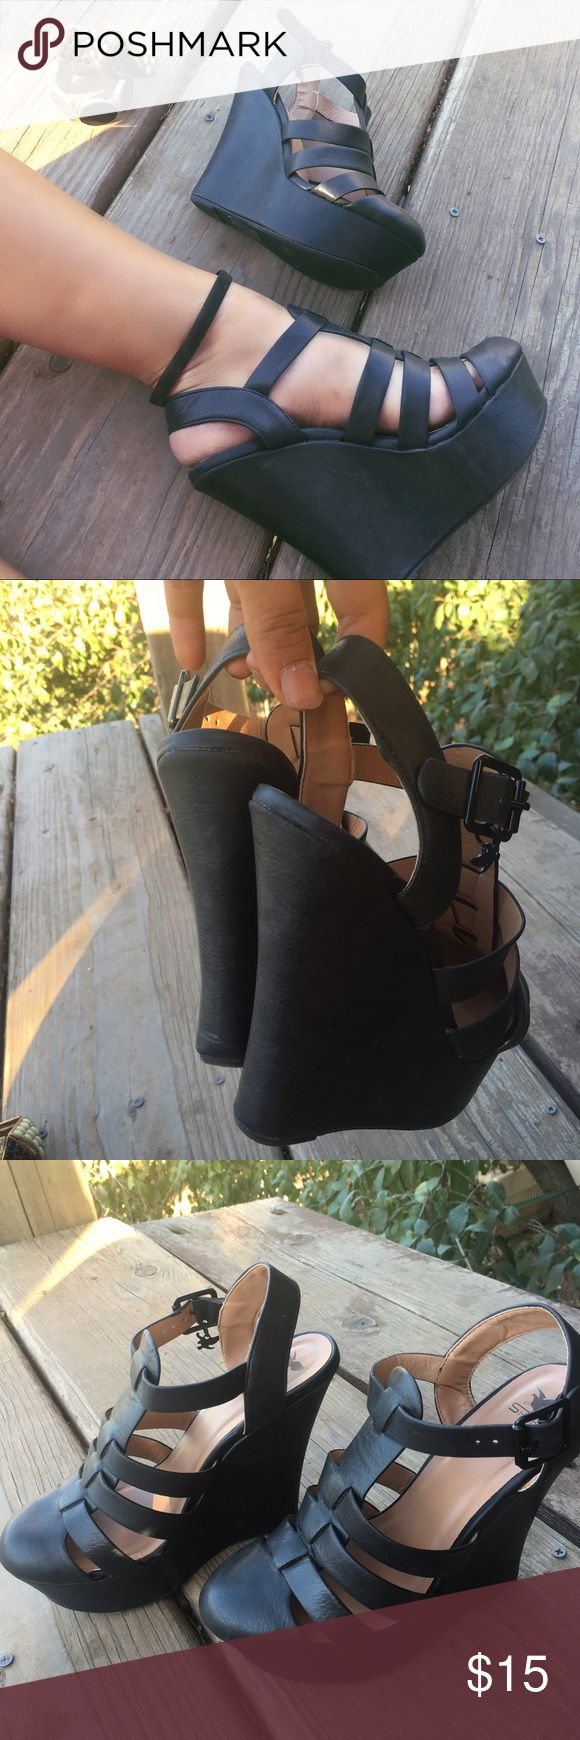 Black closed toe wedges!  Super adorable black wedges! Bought them for a bar tending job since I needed black shoes to serve but they ended up being a little too tall! Only worn once. Bought from Sheikh for $45. Size 8.5. These are tall, I'd guess at least 5 in maybe 6. Sheikh Shoes Wedges